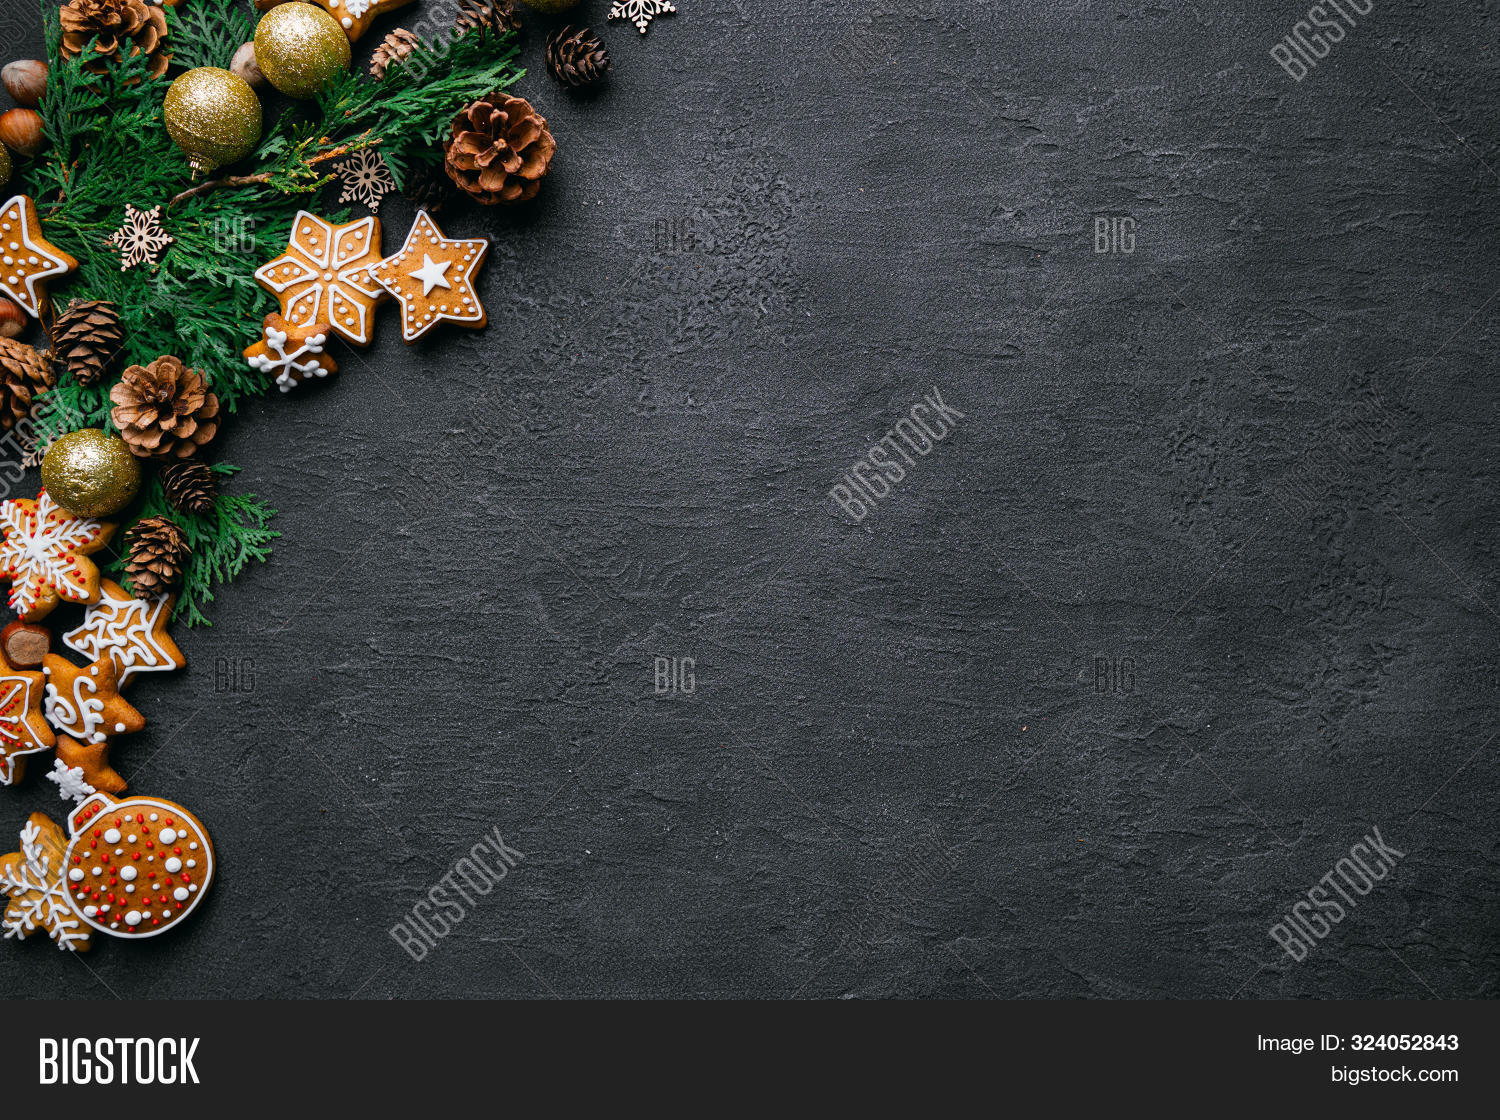 anise,background,baked,baking,bauble,black,bread,celebration,christmas,cinnamon,composition,cookie,cooking,cozy,dark,decor,decorated,decoration,decorative,family,festive,fir,flour,food,fragrant,ginger,gingerbread,happy,holiday,home,homemade,ingredient,kitchen,merry,new,pastry,preparation,rustic,seasonal,snowflake,star,sweet,tradition,traditional,winter,year